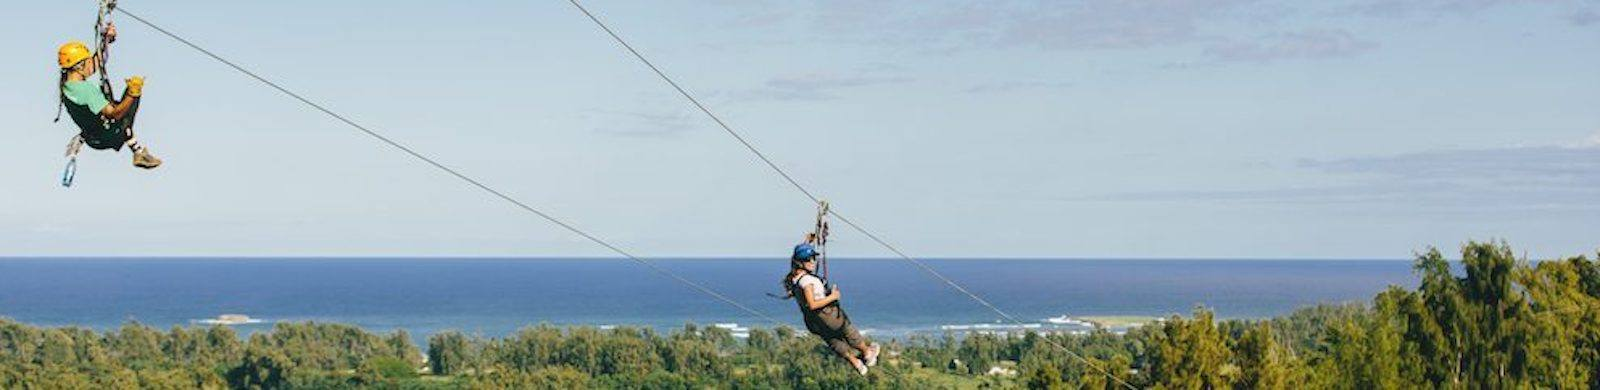 6 Tips When You Zipline in Hawaii For the First Time